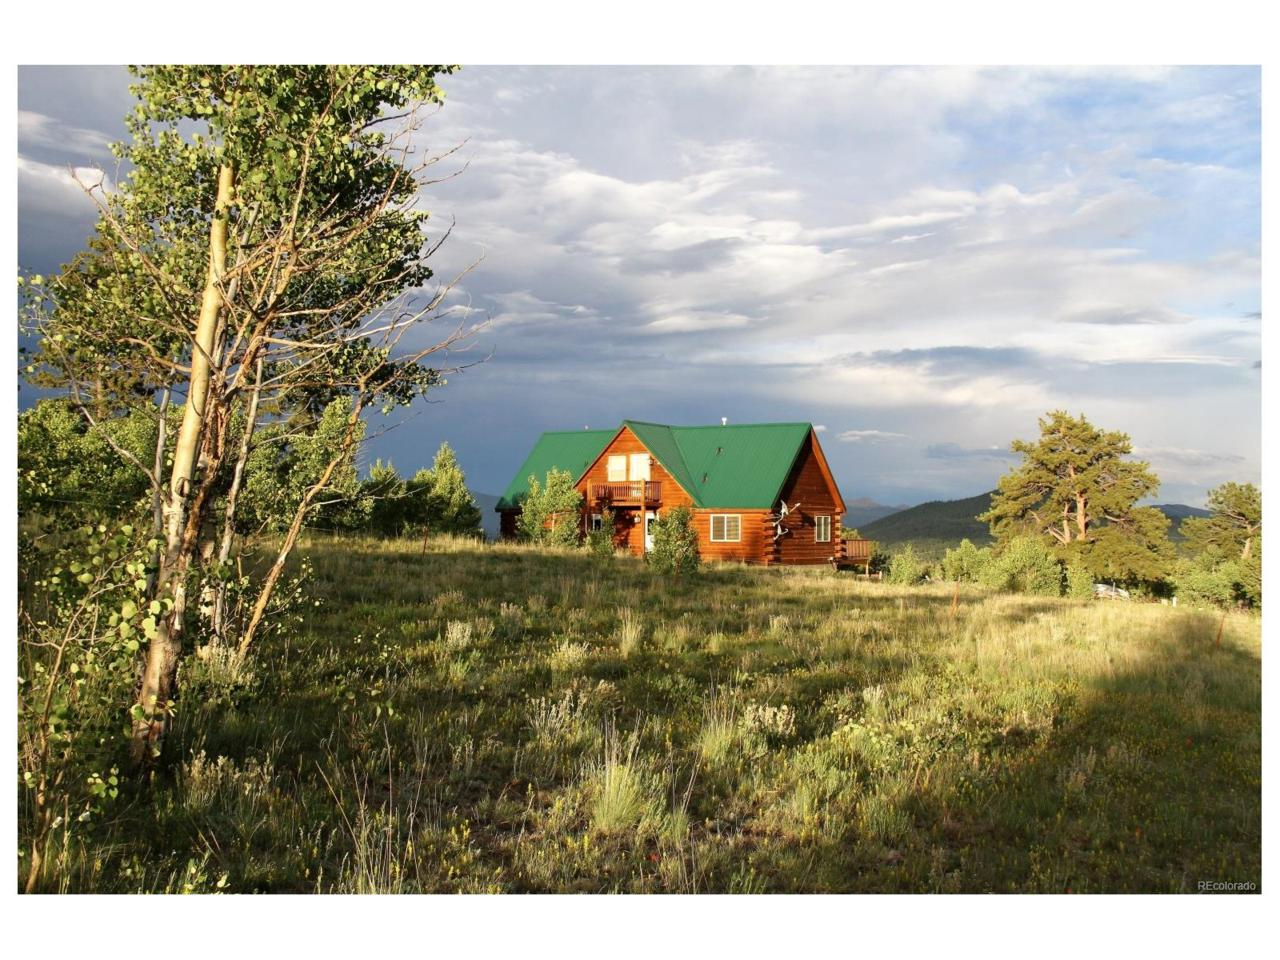 733 Warpath Road, Como, CO 80432 (MLS #6626394) :: 8z Real Estate